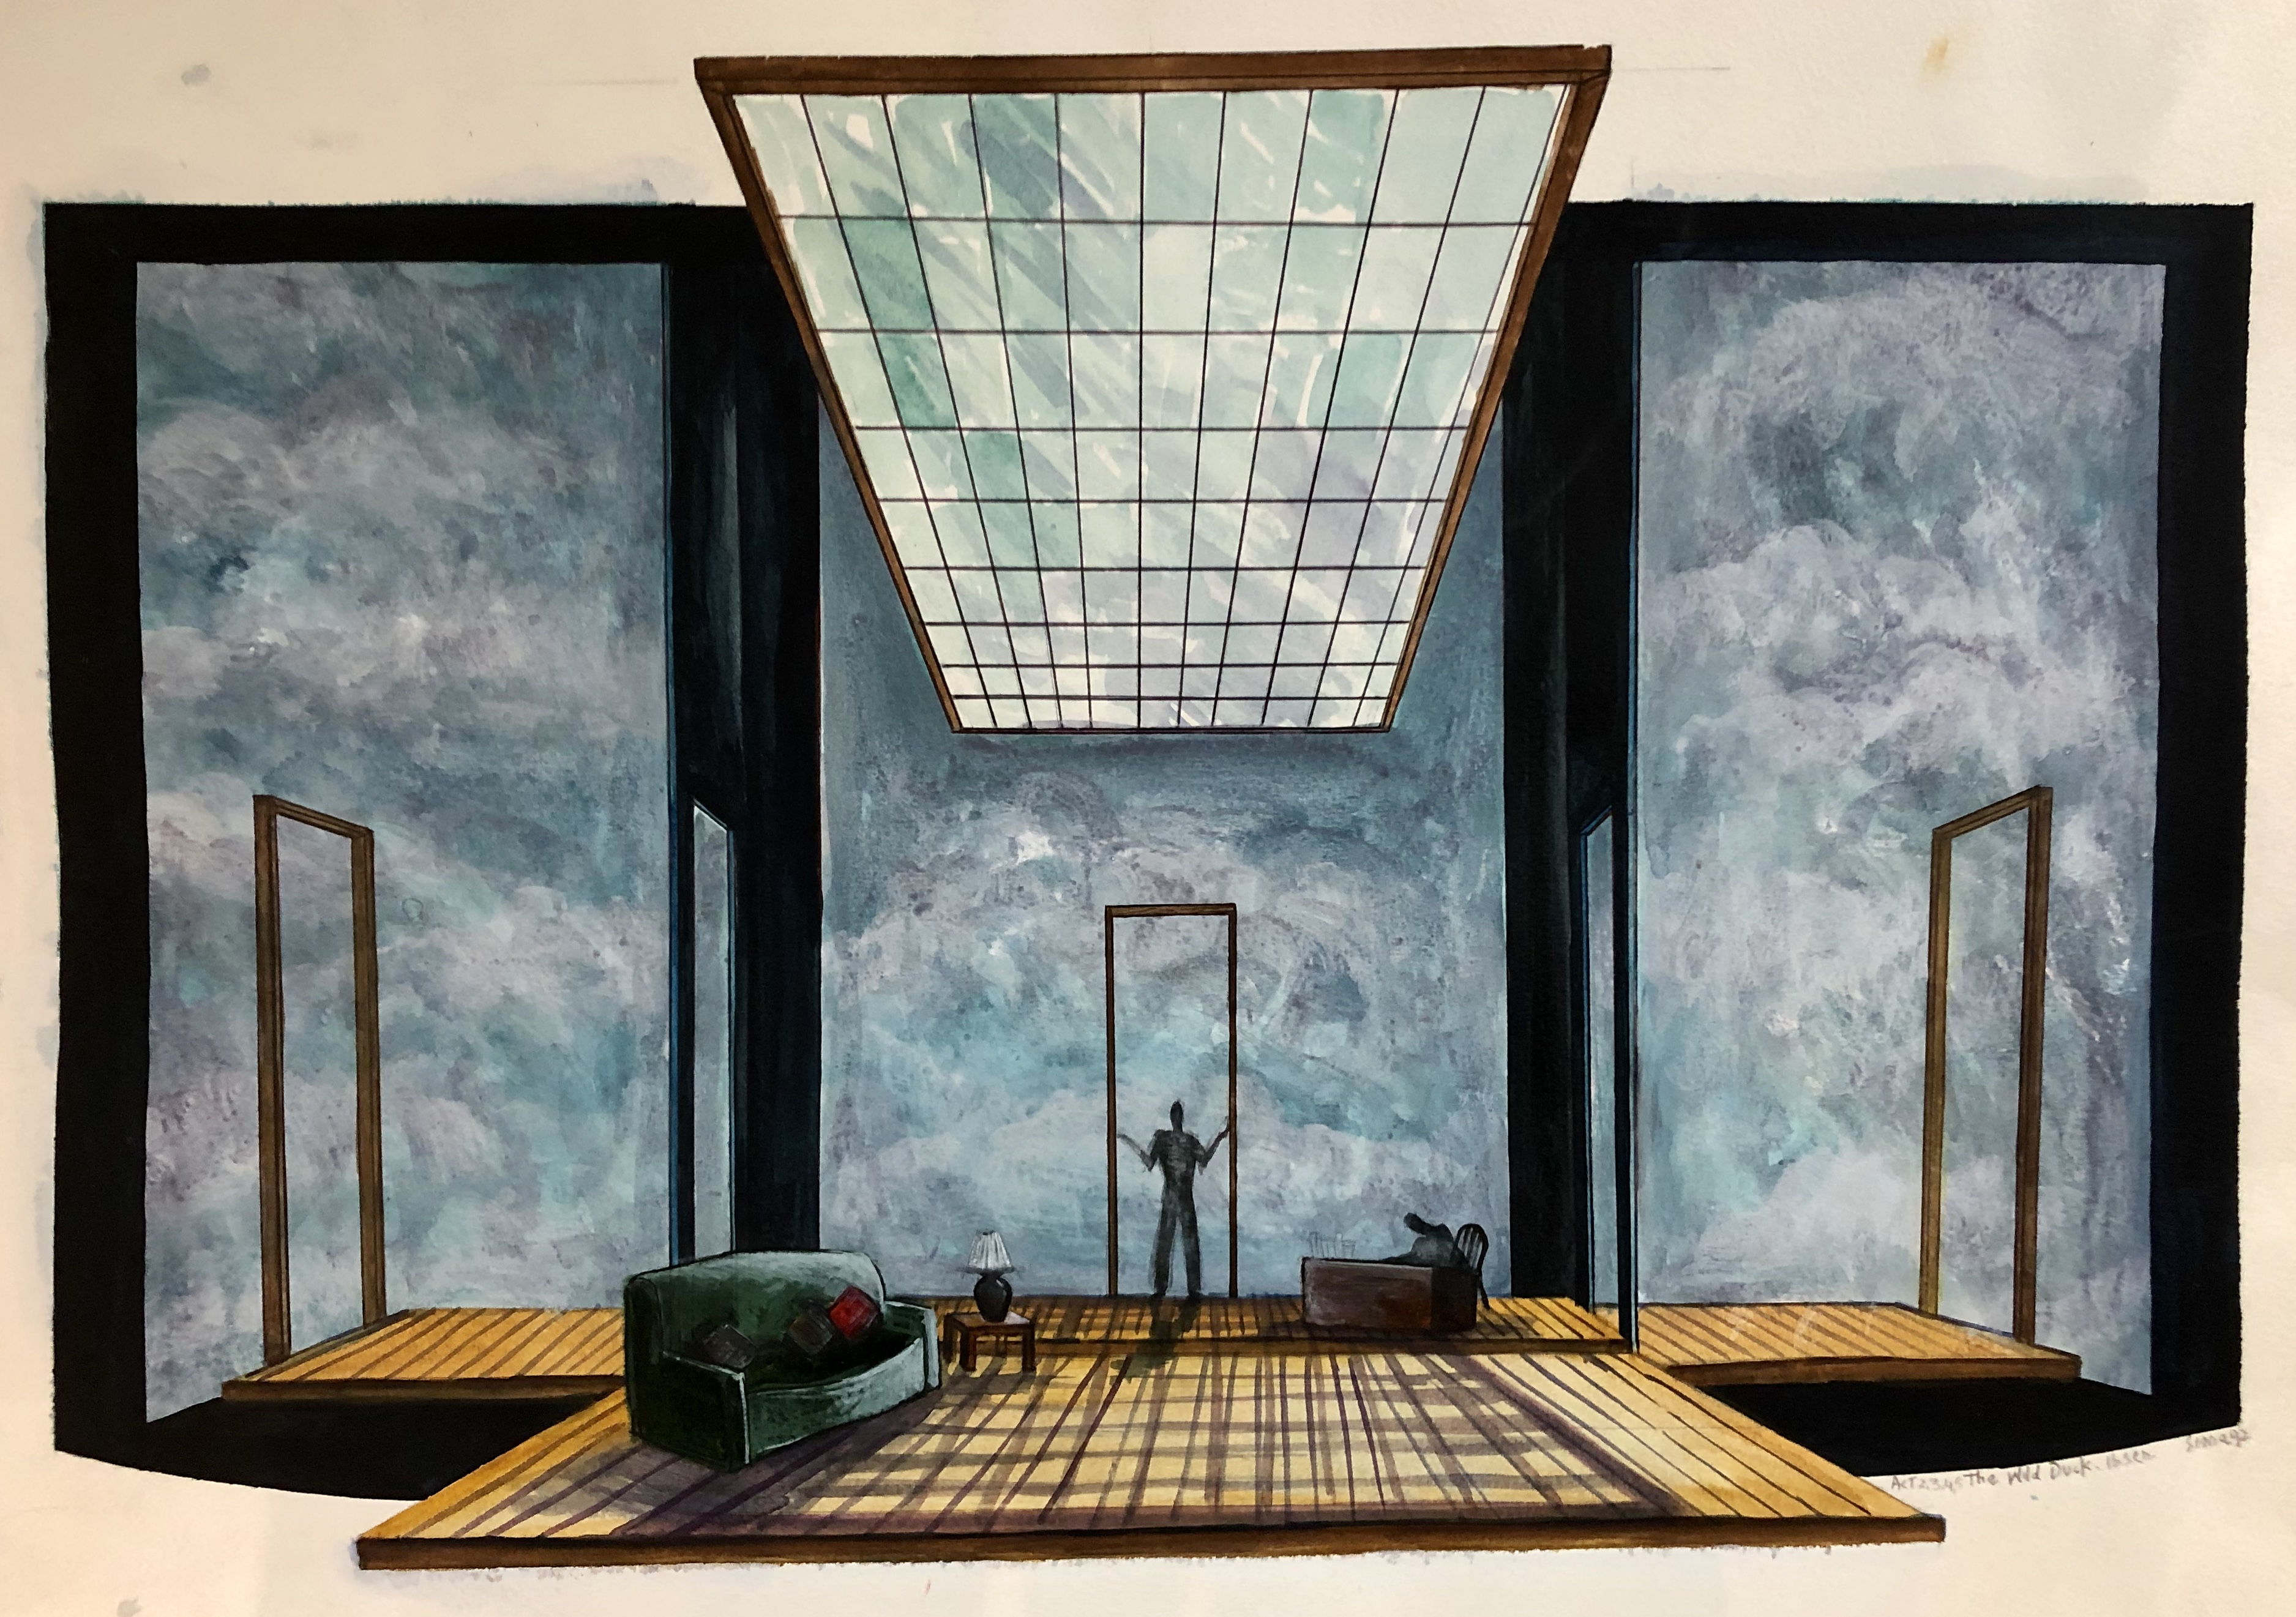 The Wild Duck by Henrik Ibsen - Set design renderings